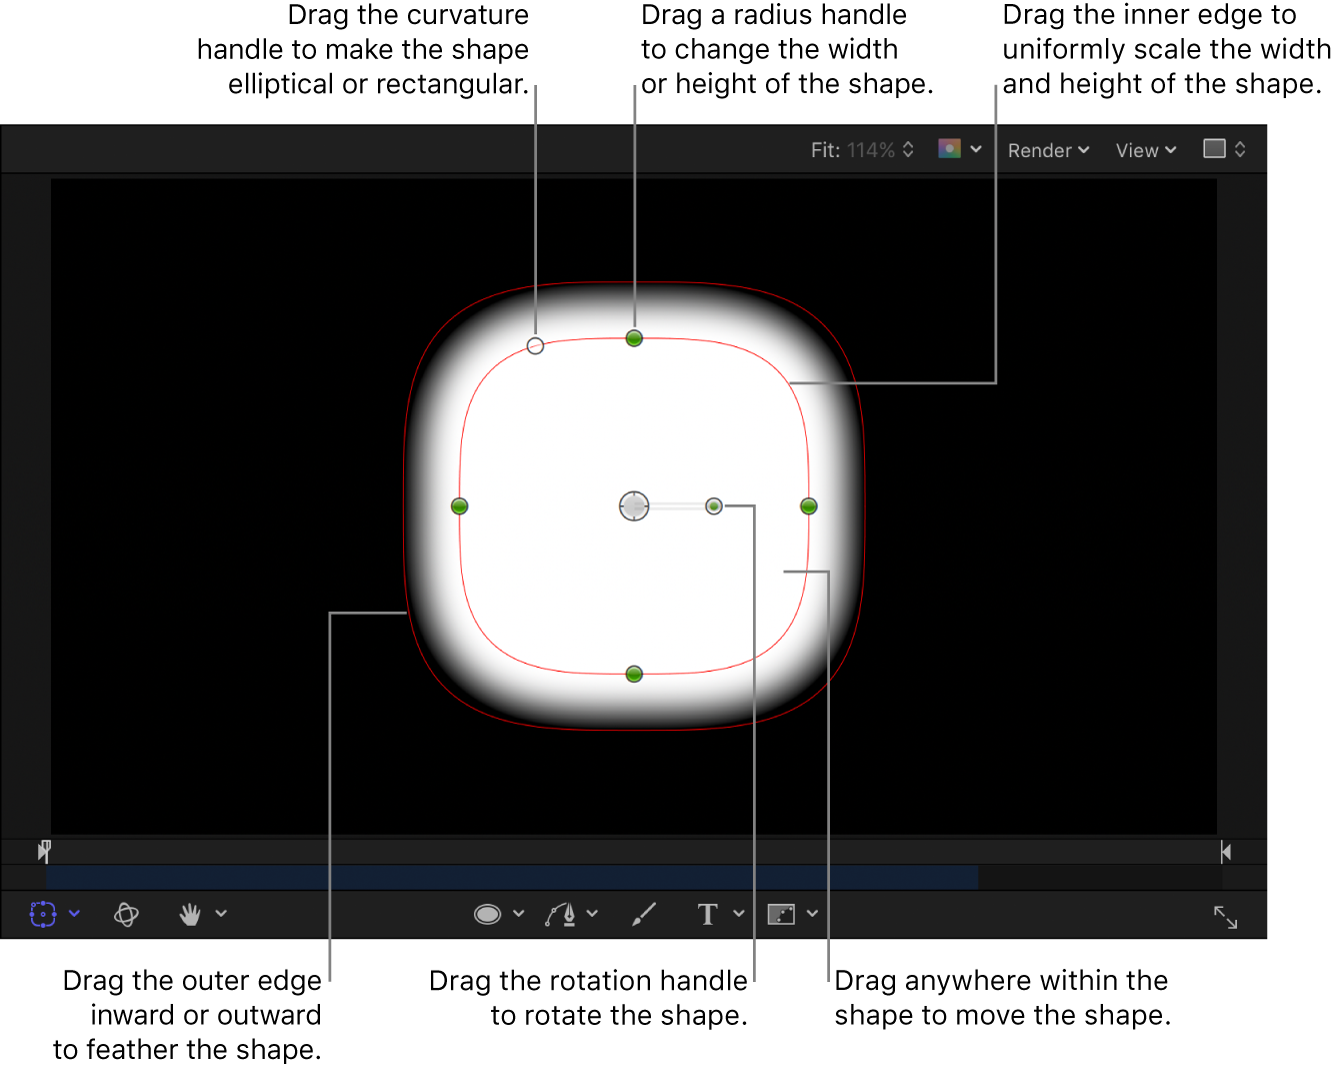 Onscreen controls to scale, feather, adjust curvature, and rotate a simple shape